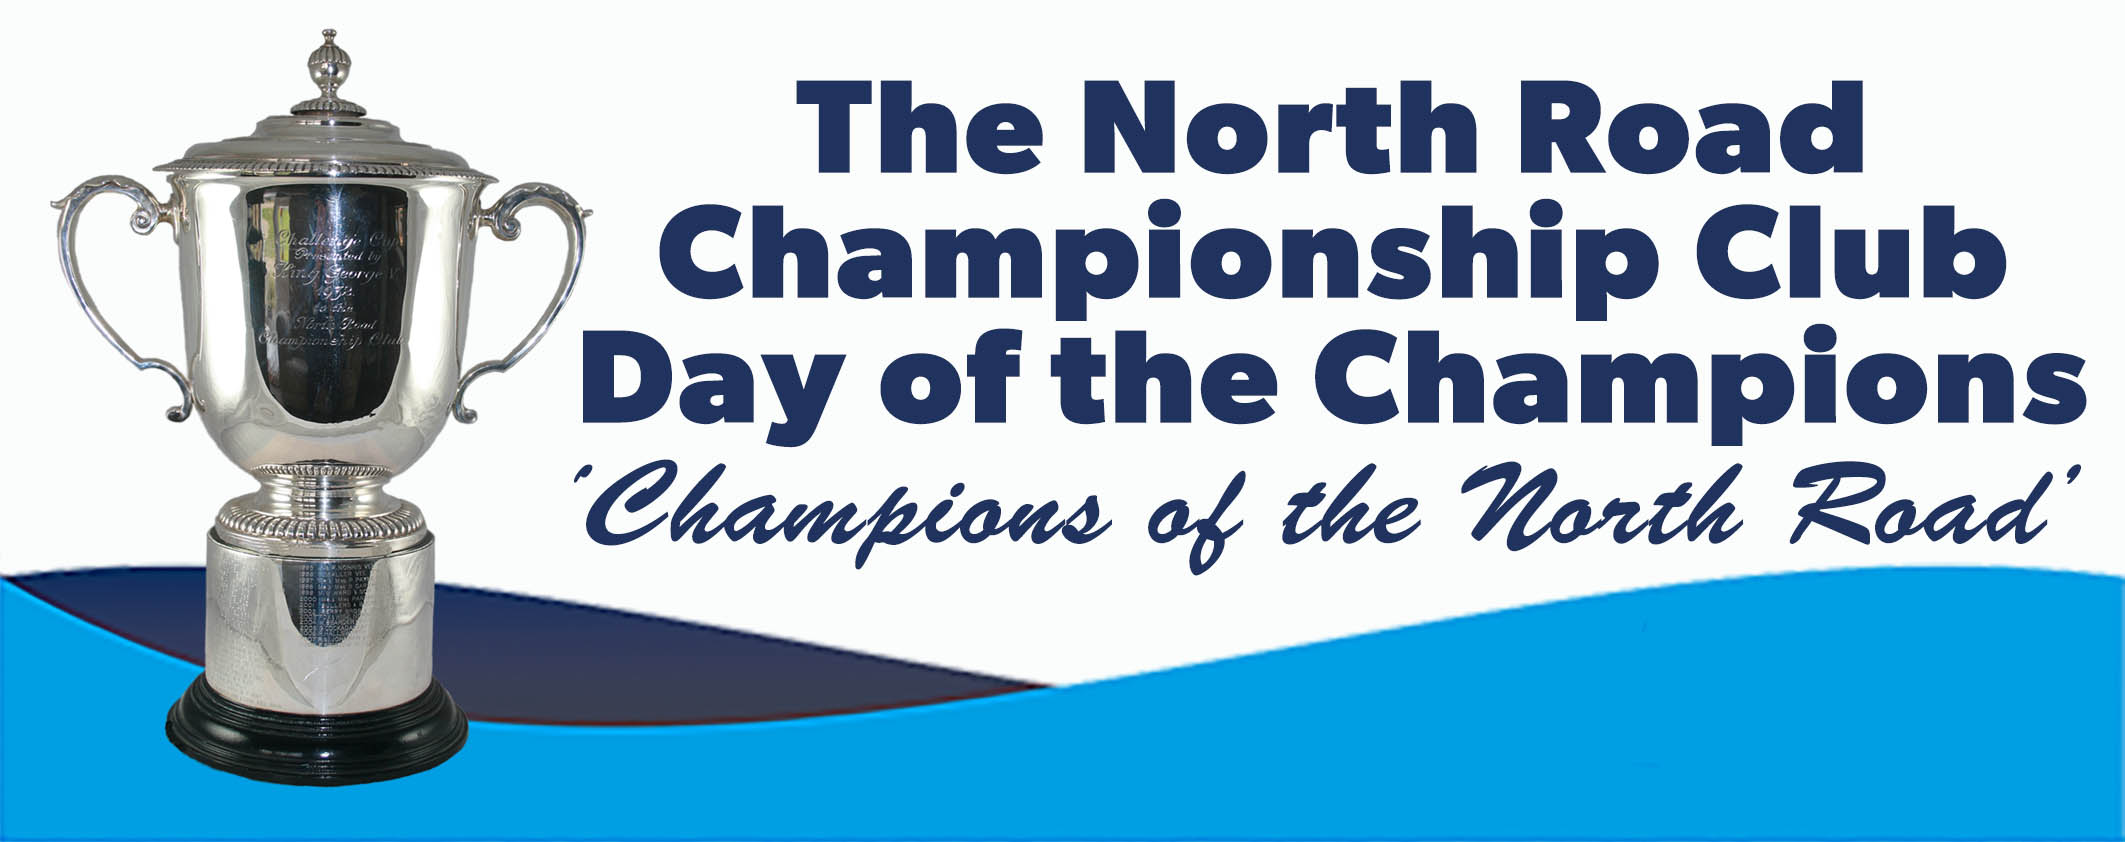 NRCC Day of the Champions Sale